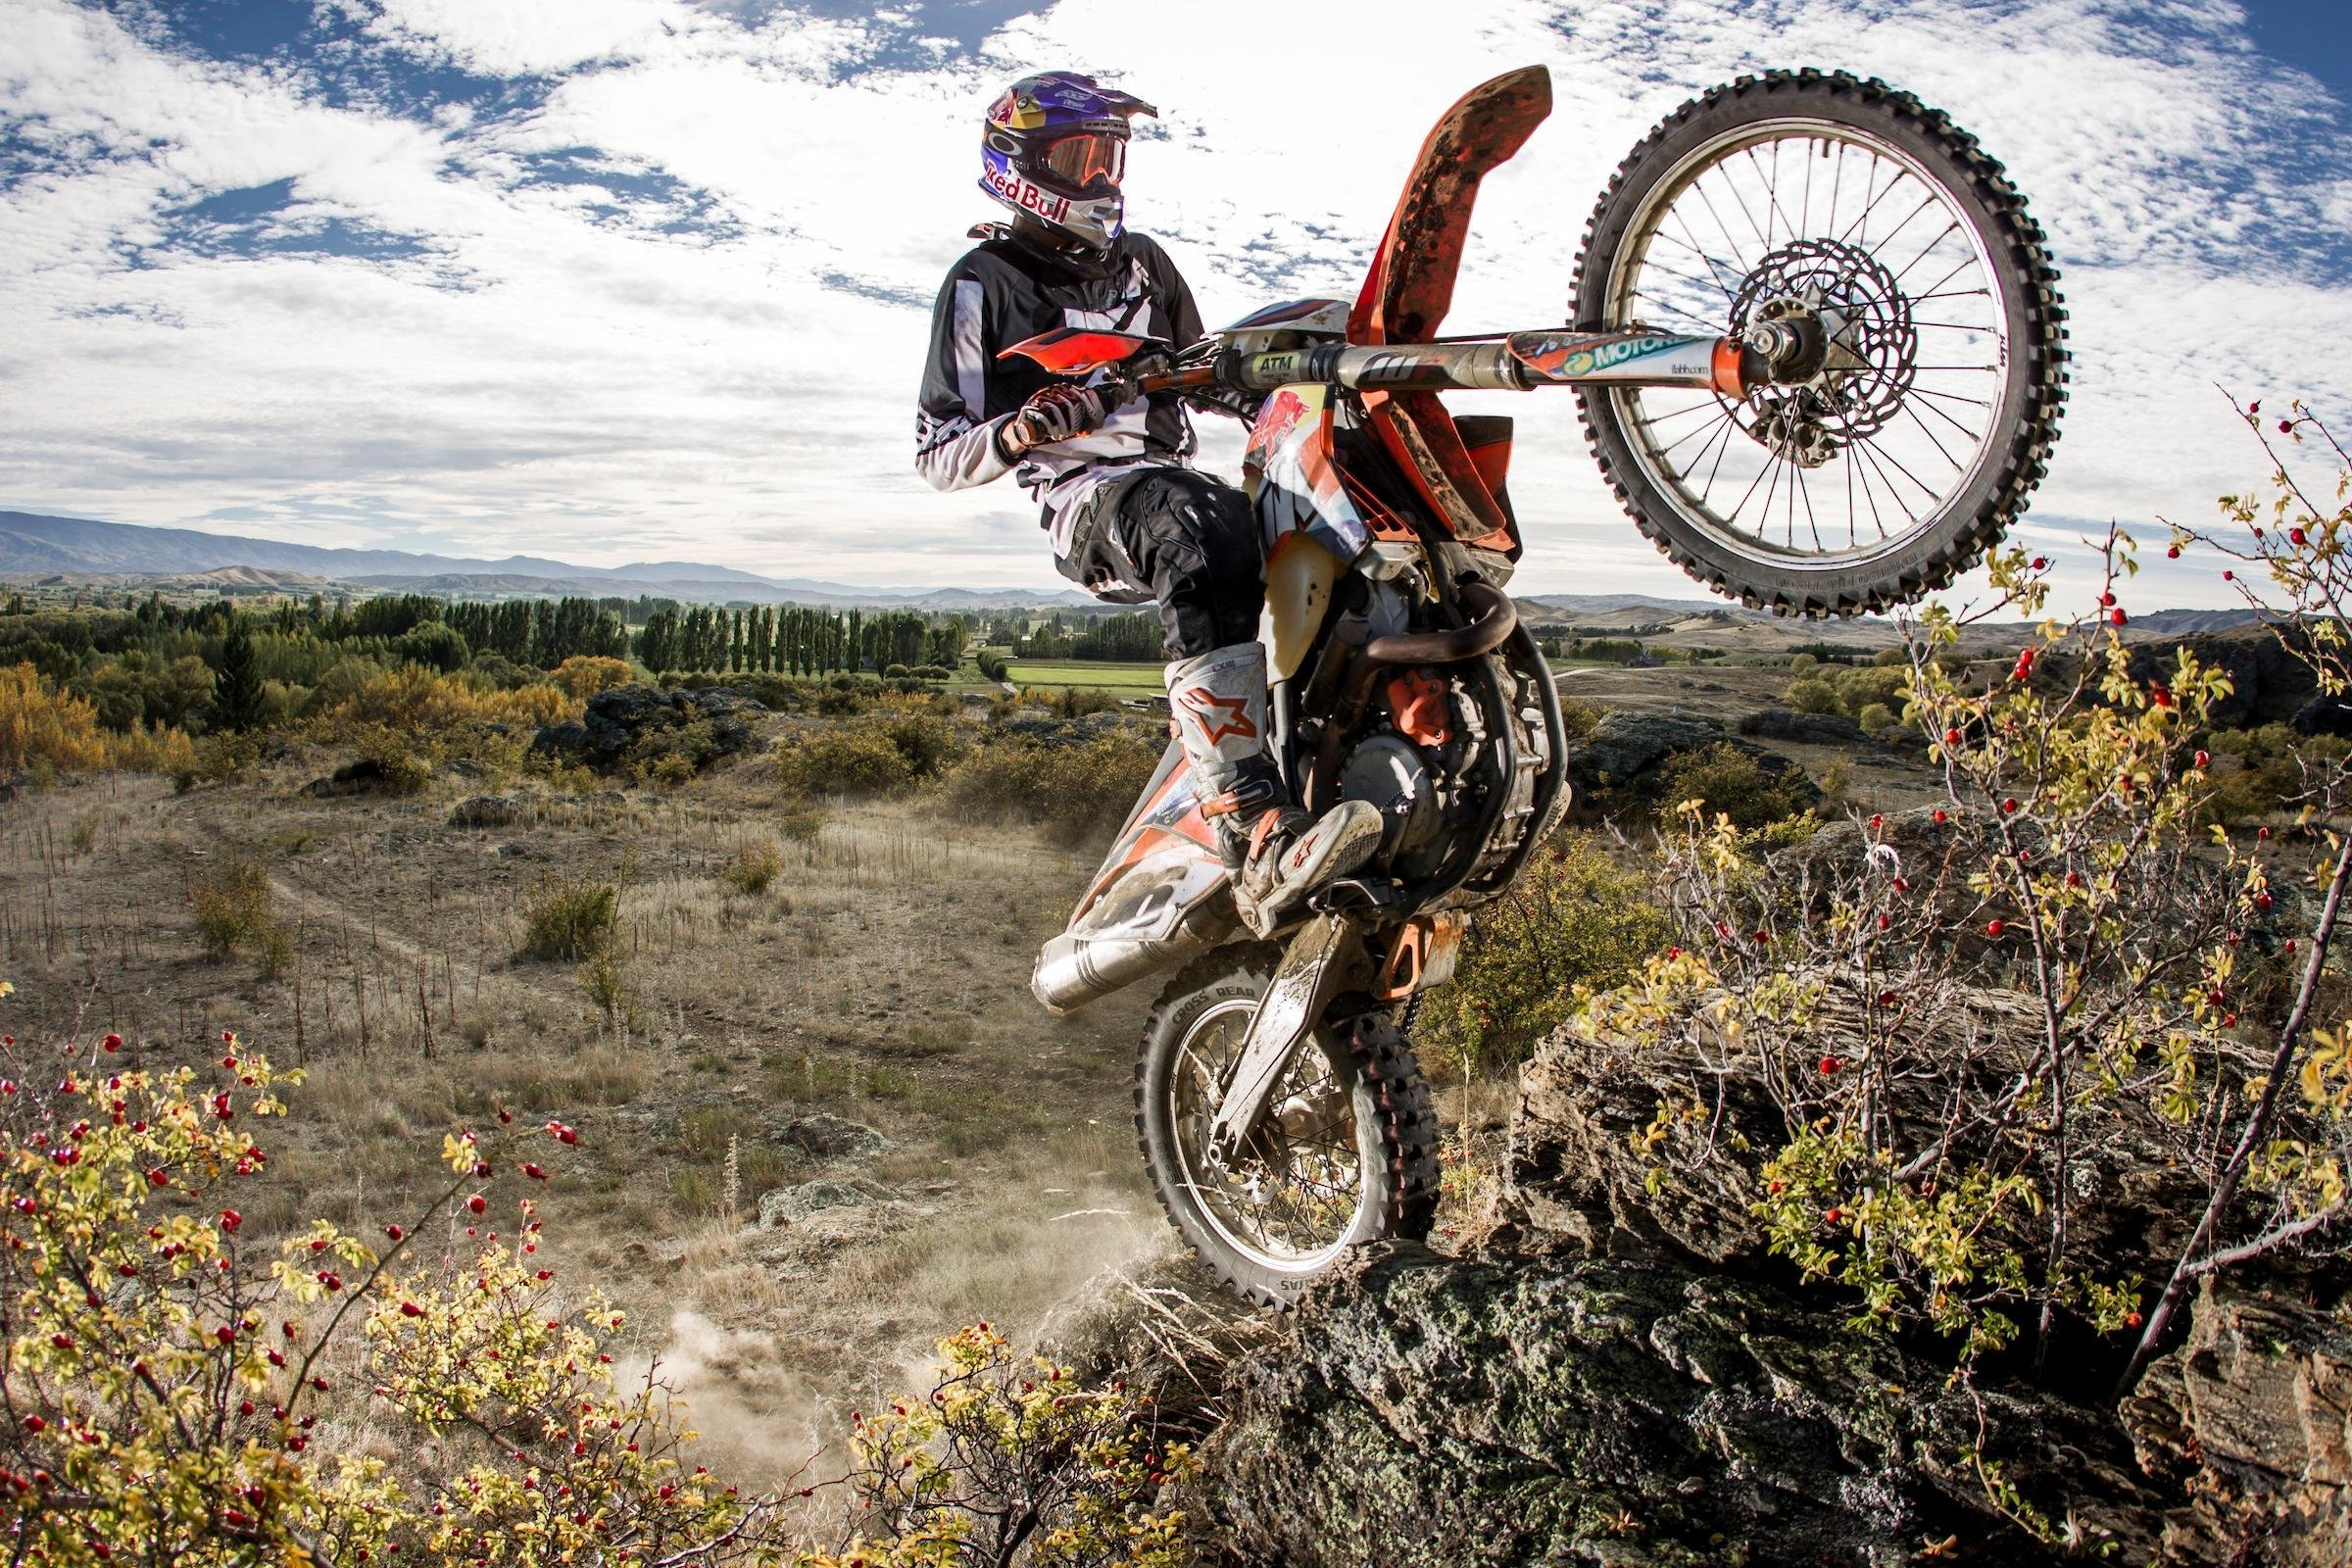 Want to ride and learn from Chris Birch? We are raffling off an enduro coaching class with the man himself!  - Click Here for more info